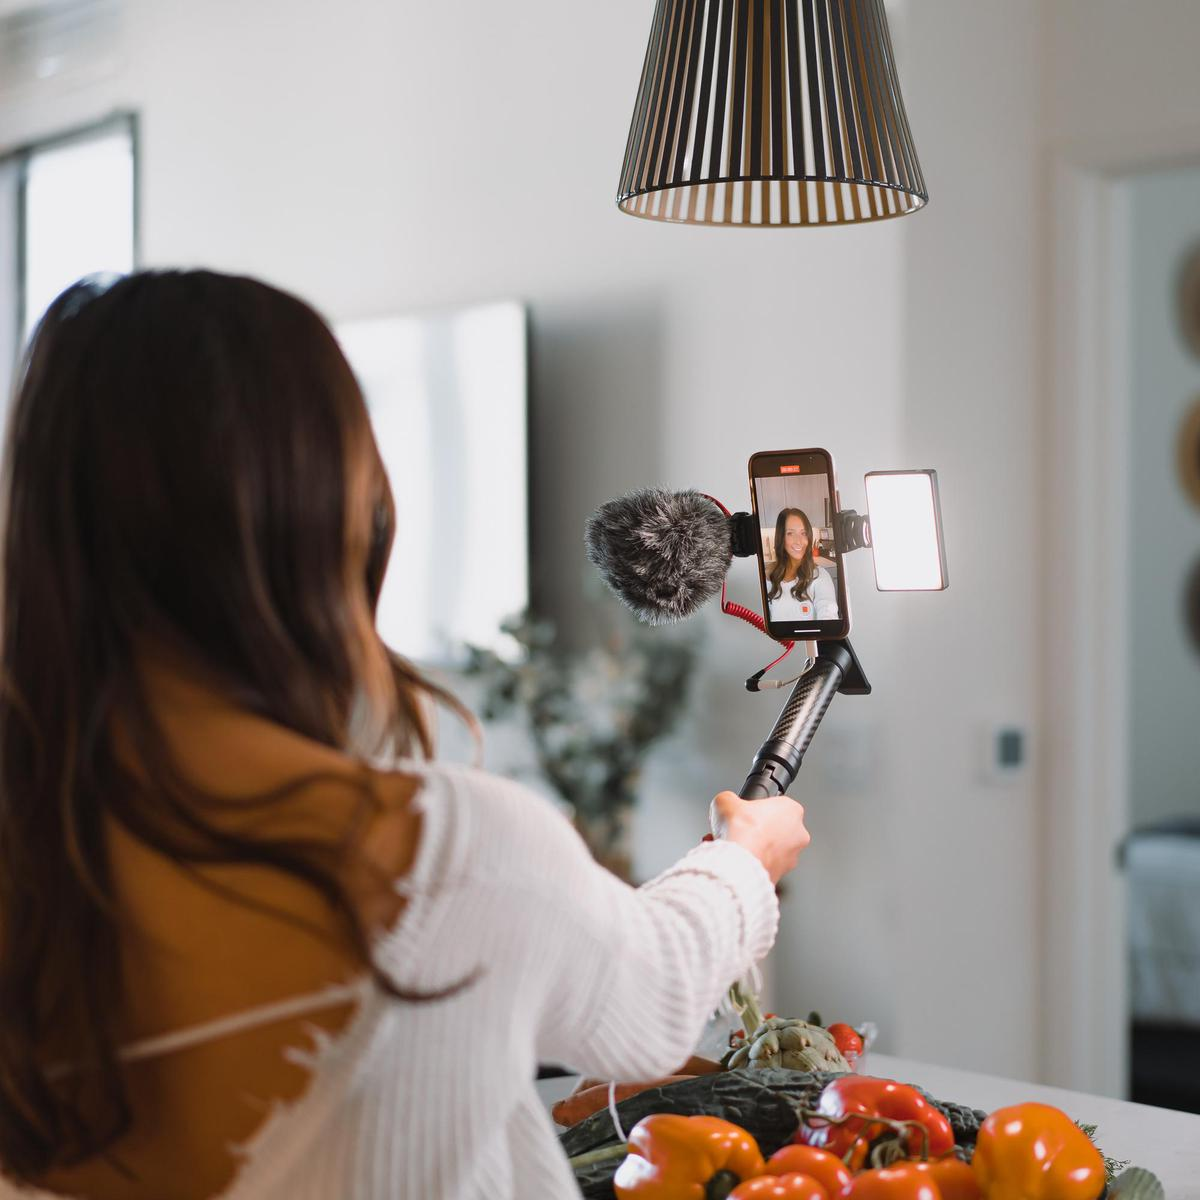 A model with a self stick, smartphone and Lume Cube lighting recording herself in a kitchen.